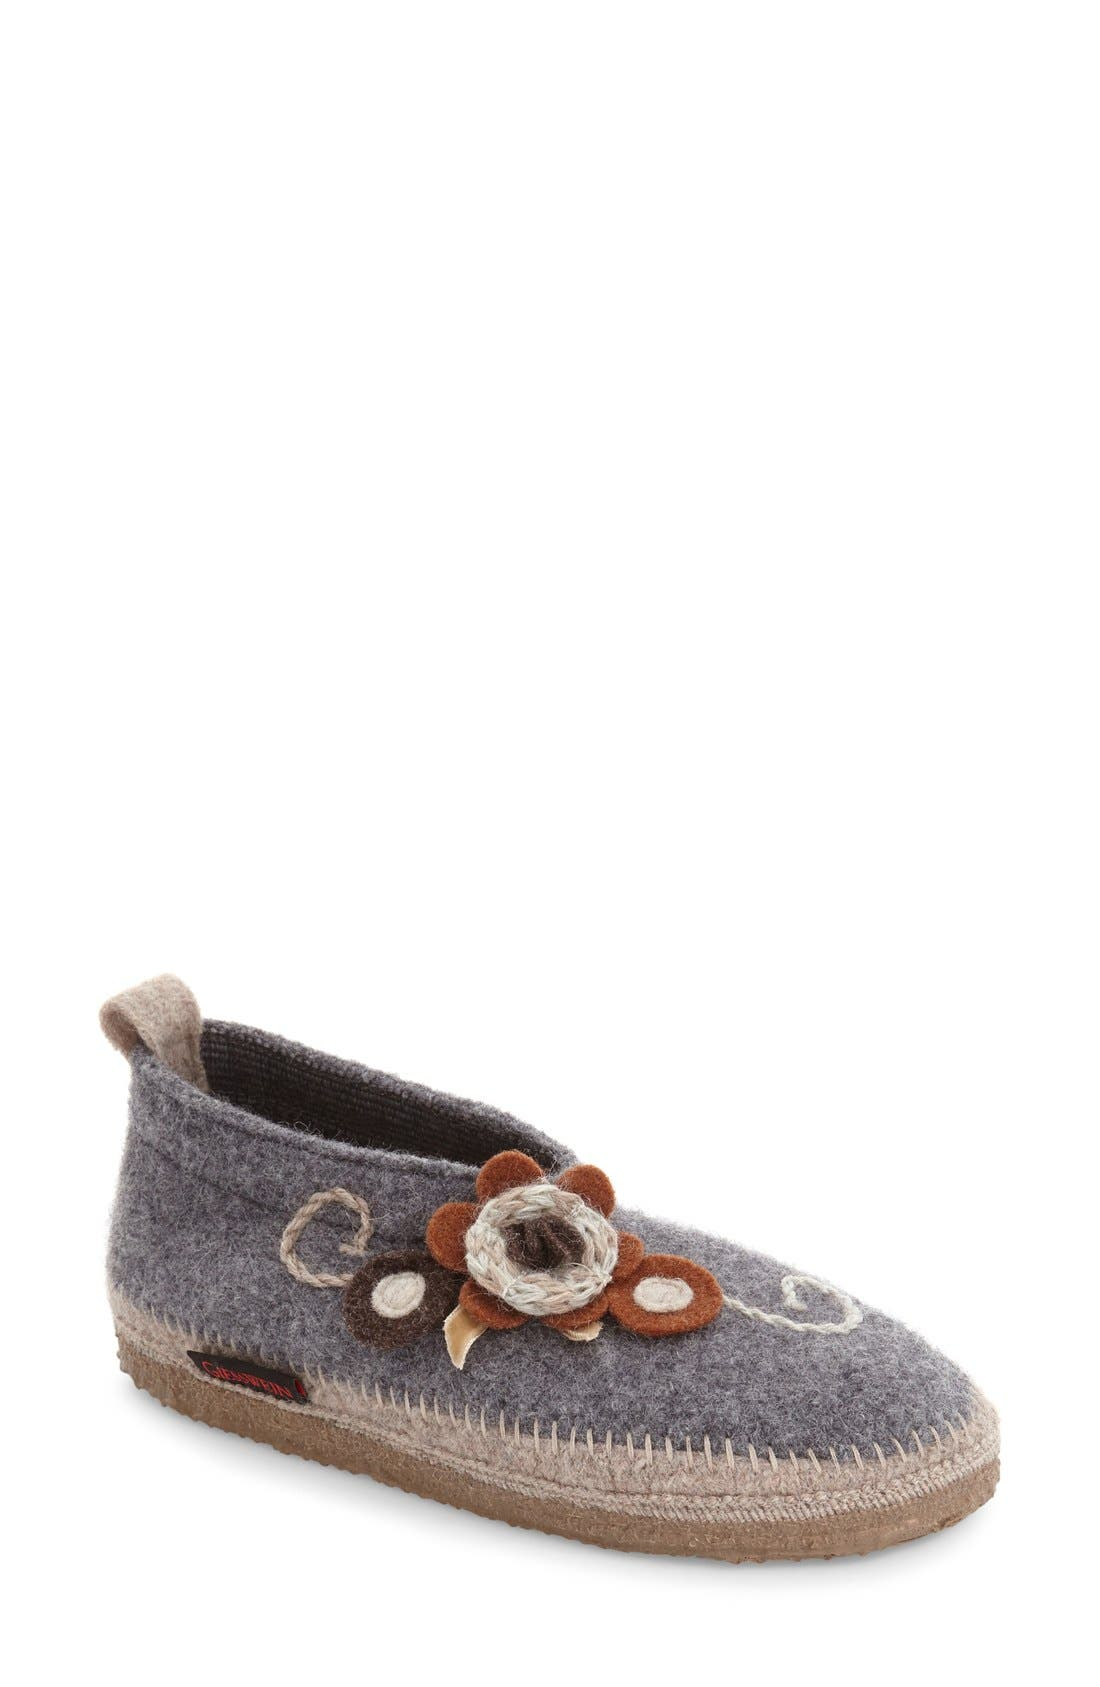 'Lunz' Slipper,                             Main thumbnail 1, color,                             Stone Wool